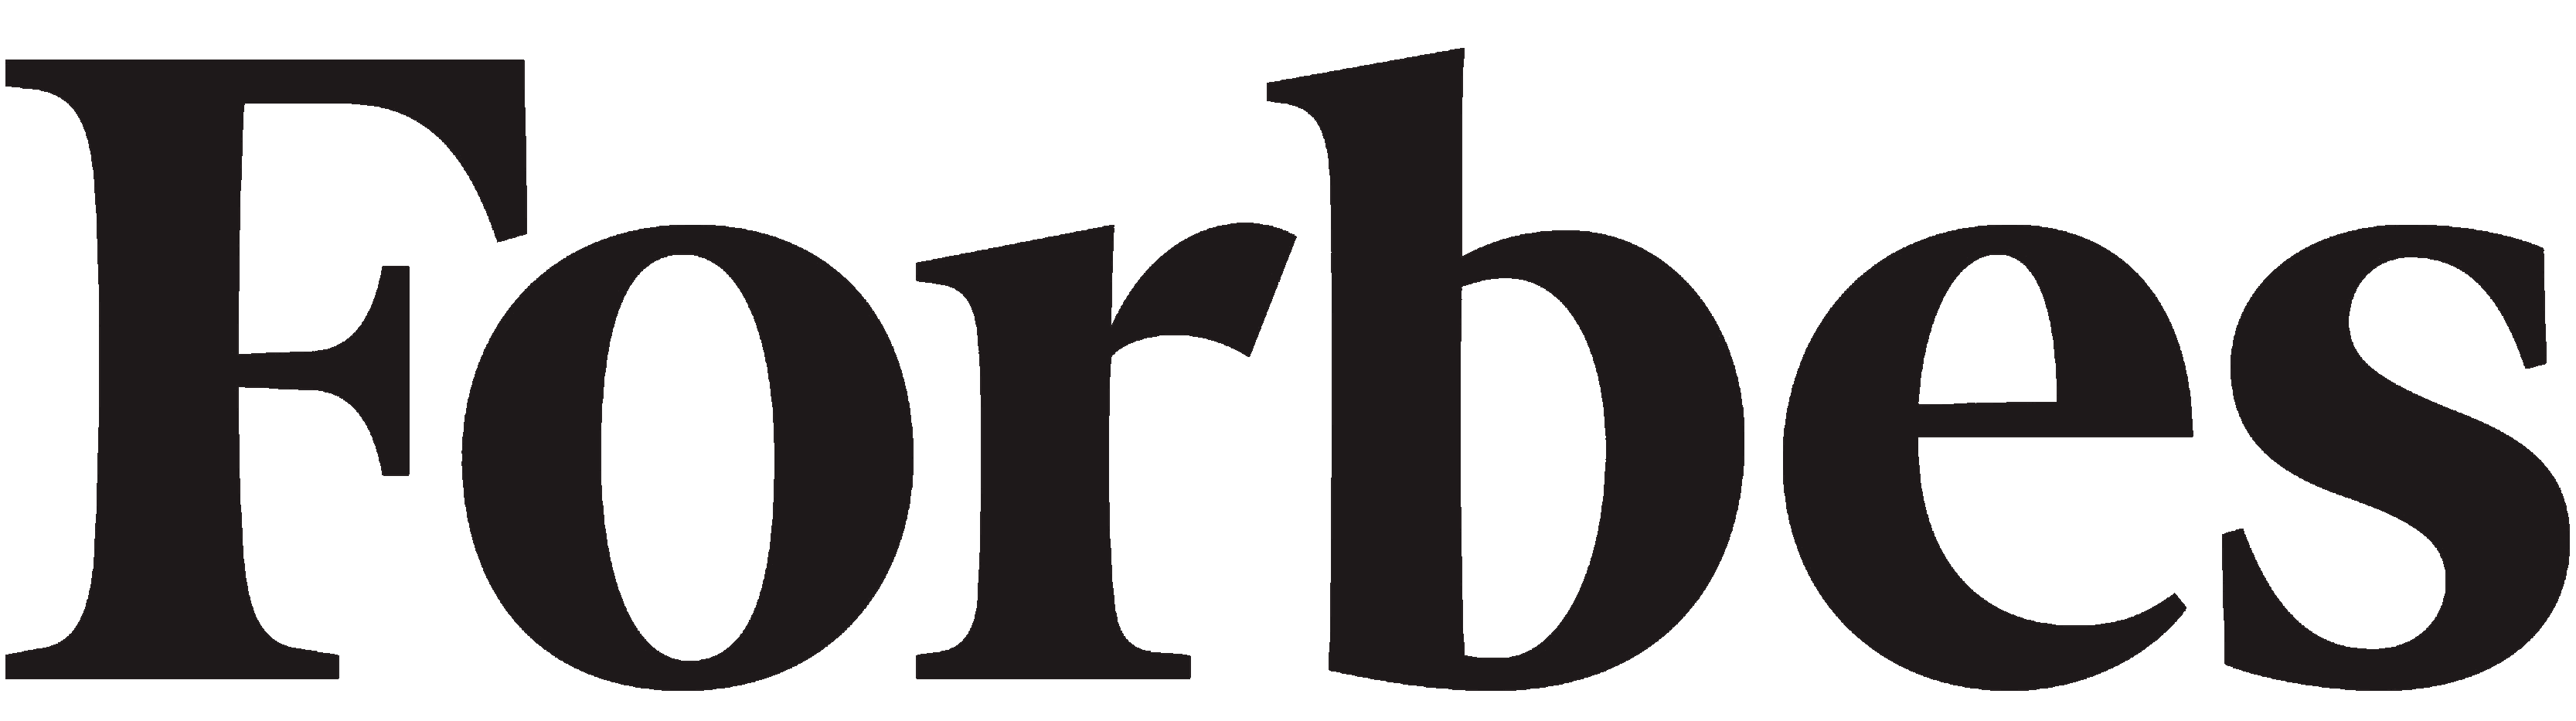 159291_forbes.png